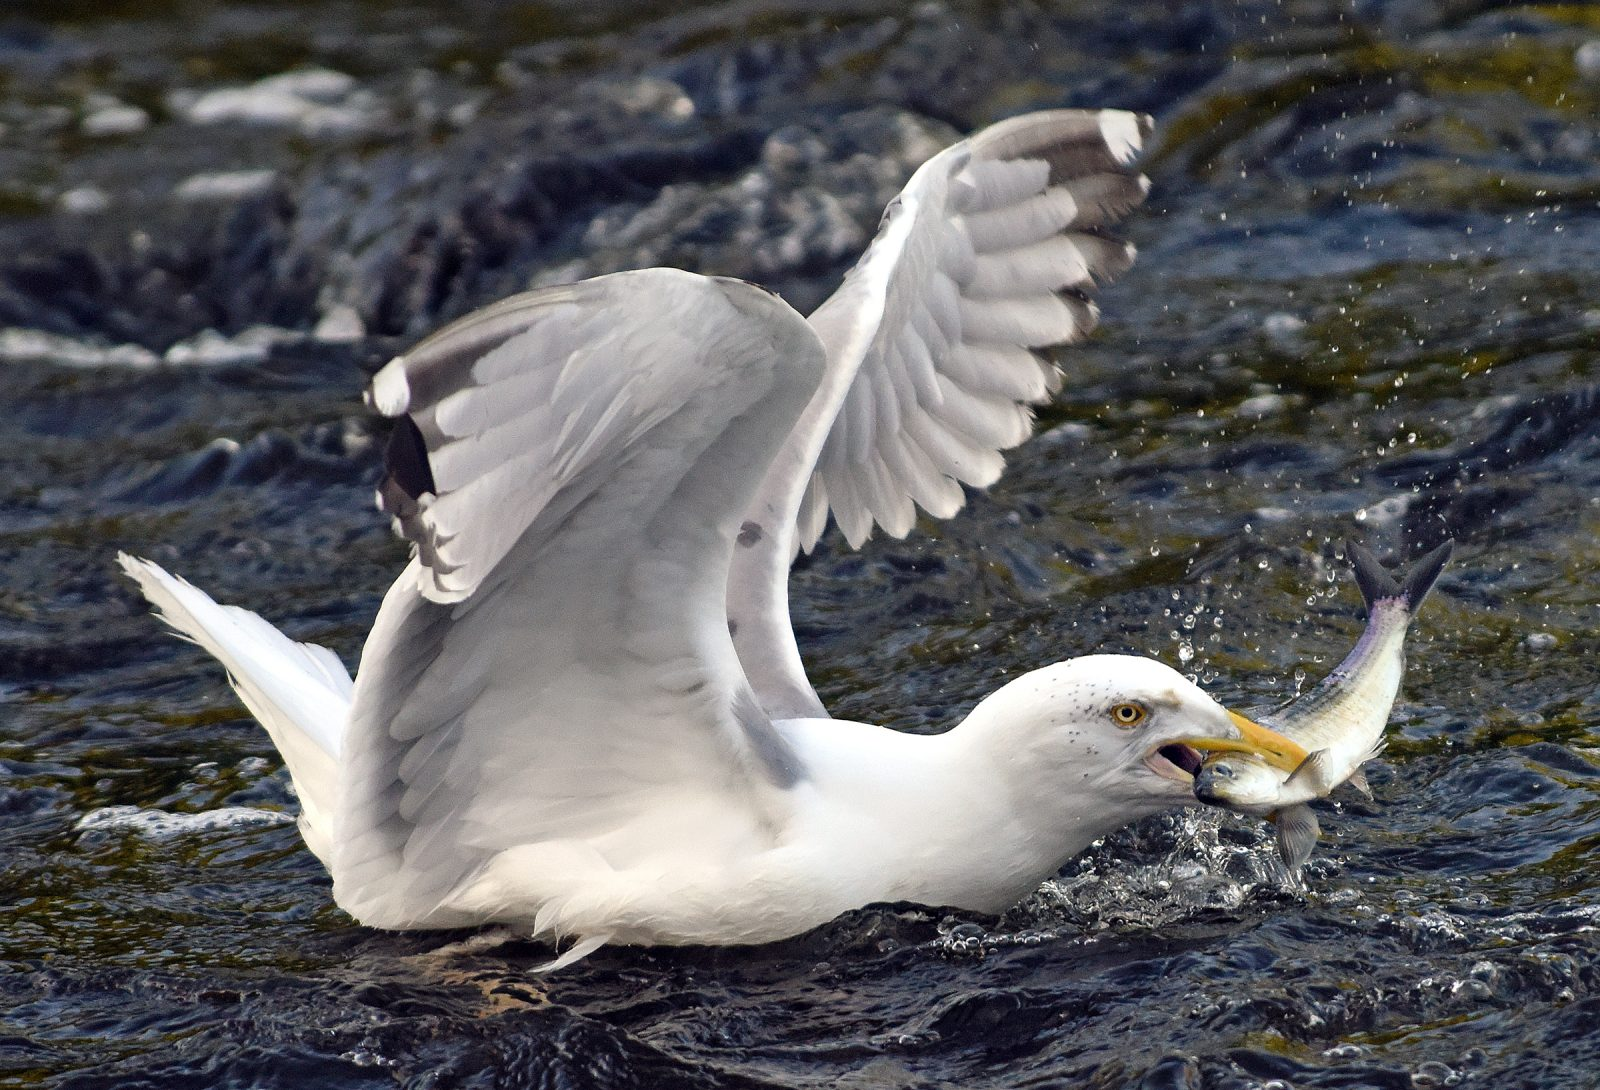 Gull with a river herring in its mouth